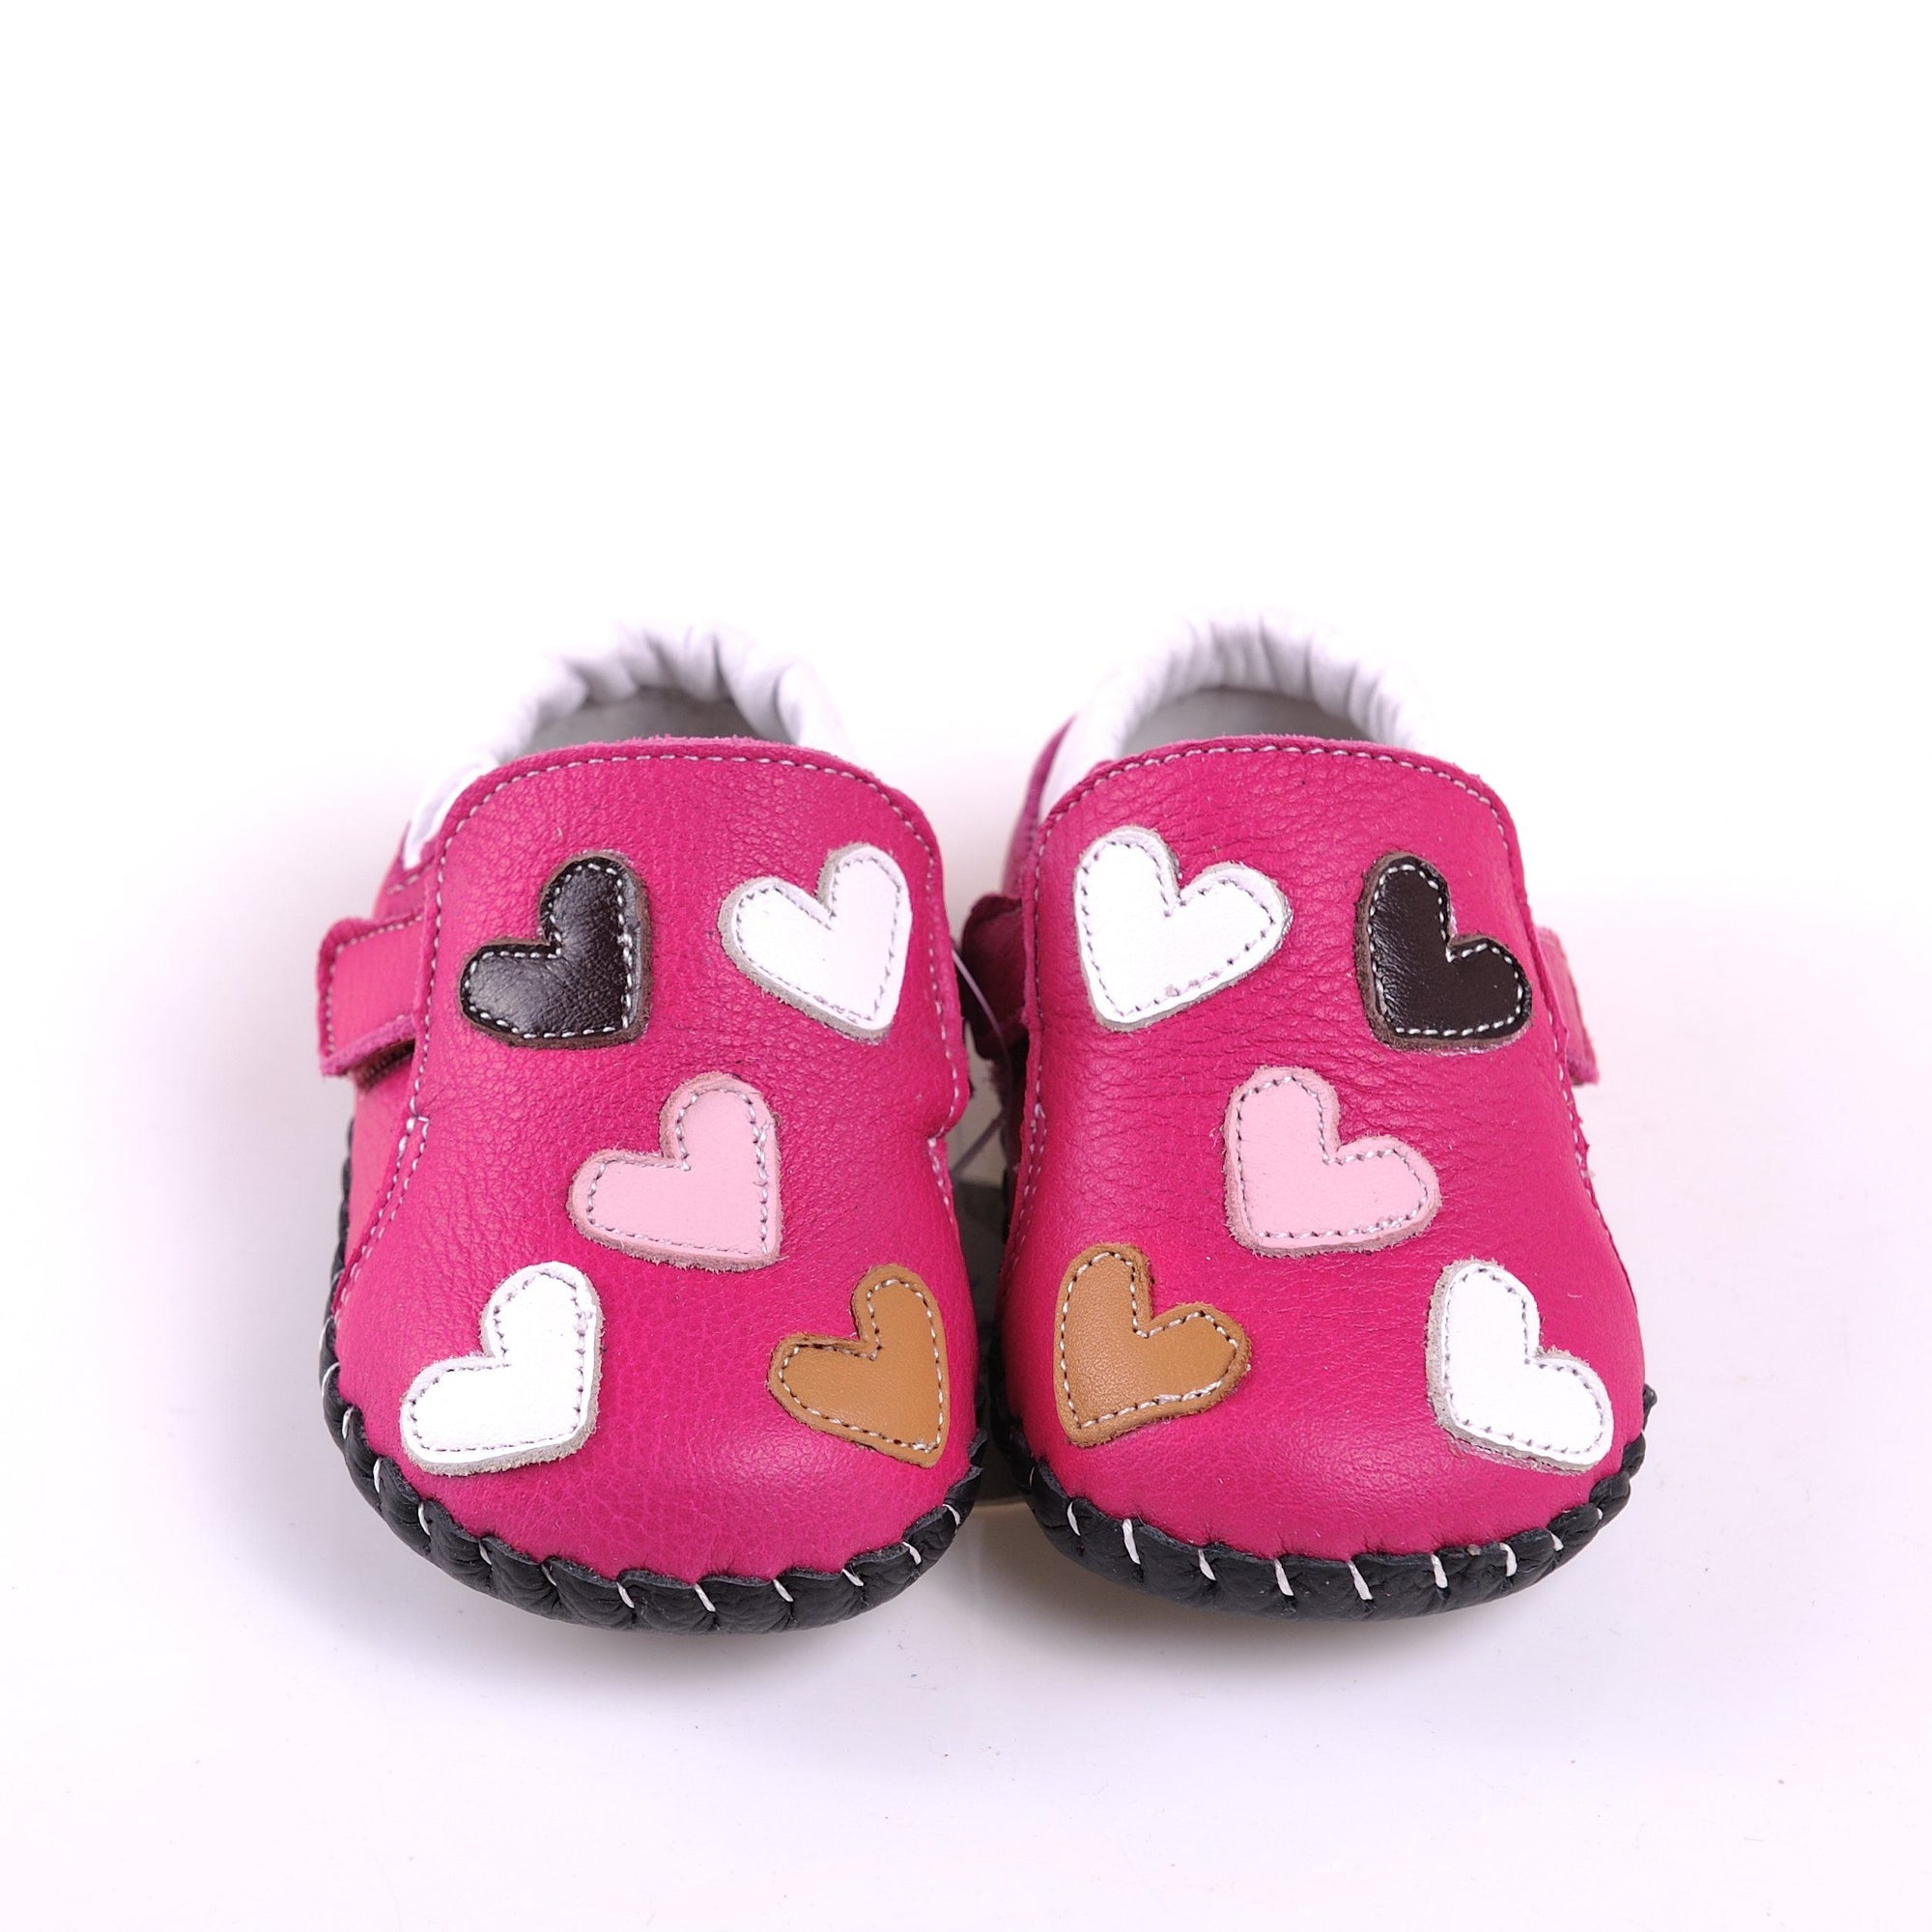 Sweetheart Loafers